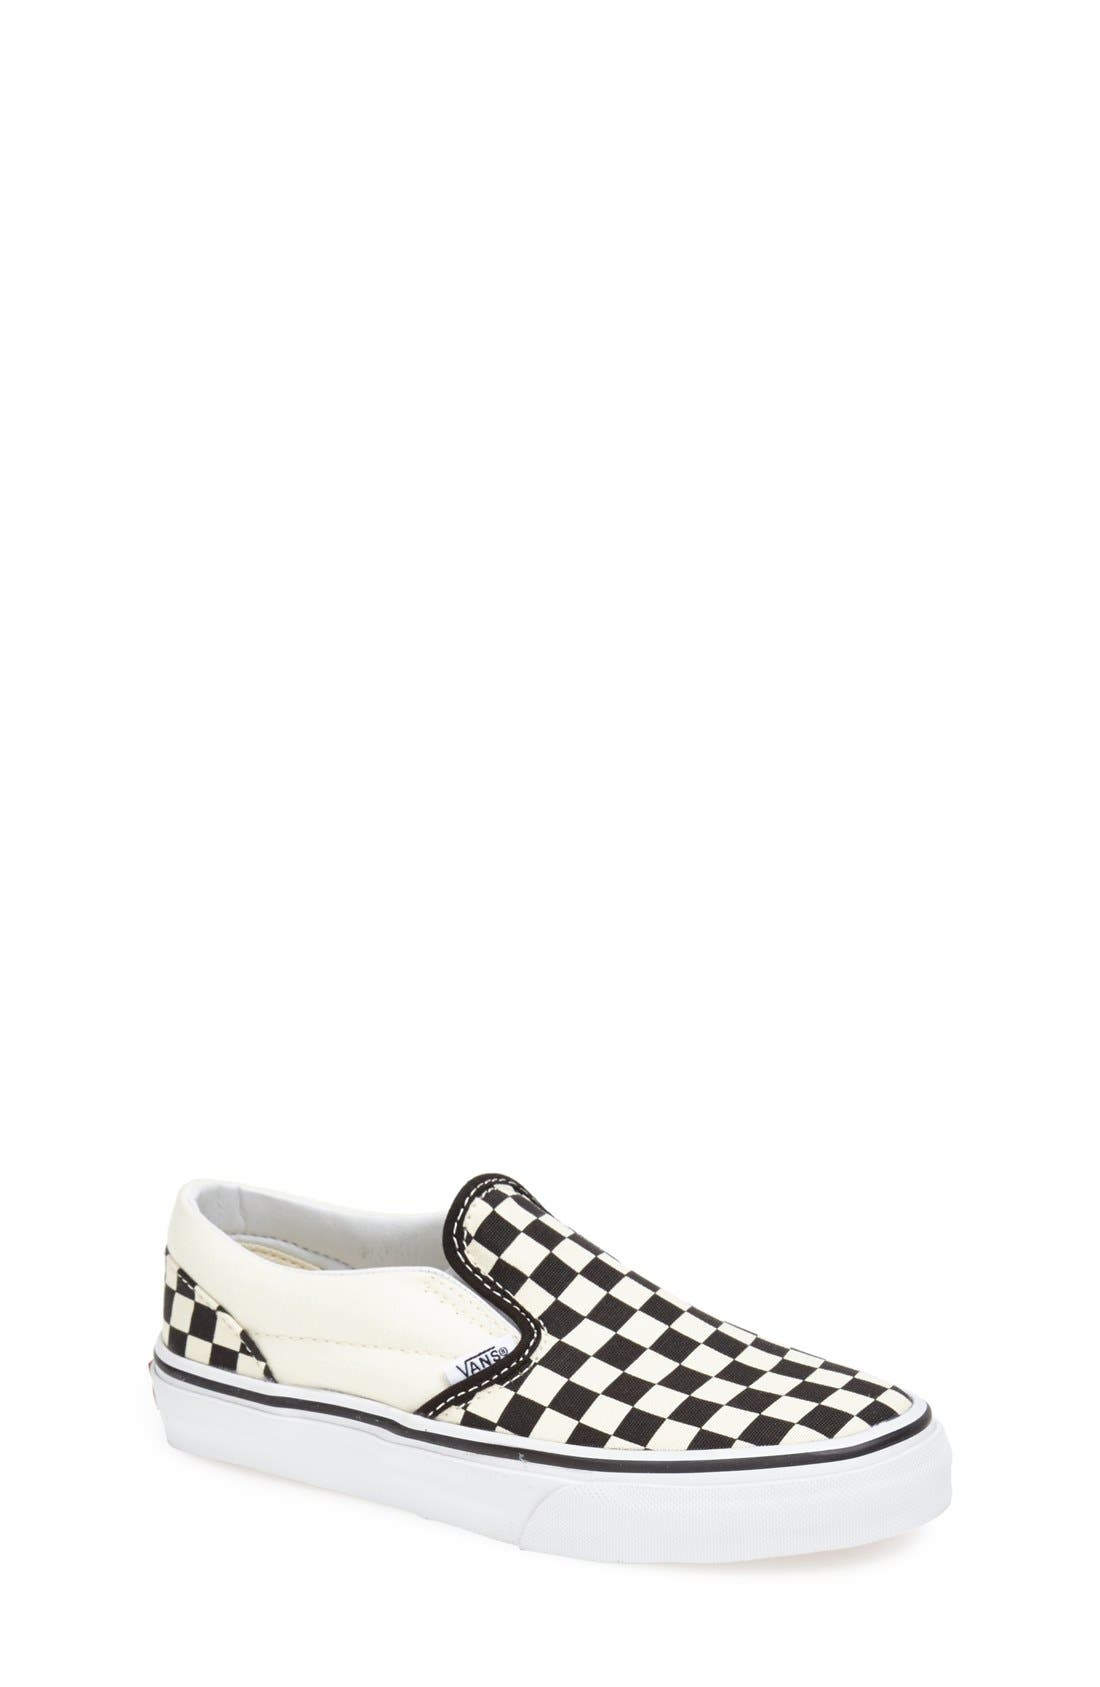 VANS, 'Classic - Checkerboard' Slip-On, Main thumbnail 1, color, BLACK/ WHITE CHECKERBOARD